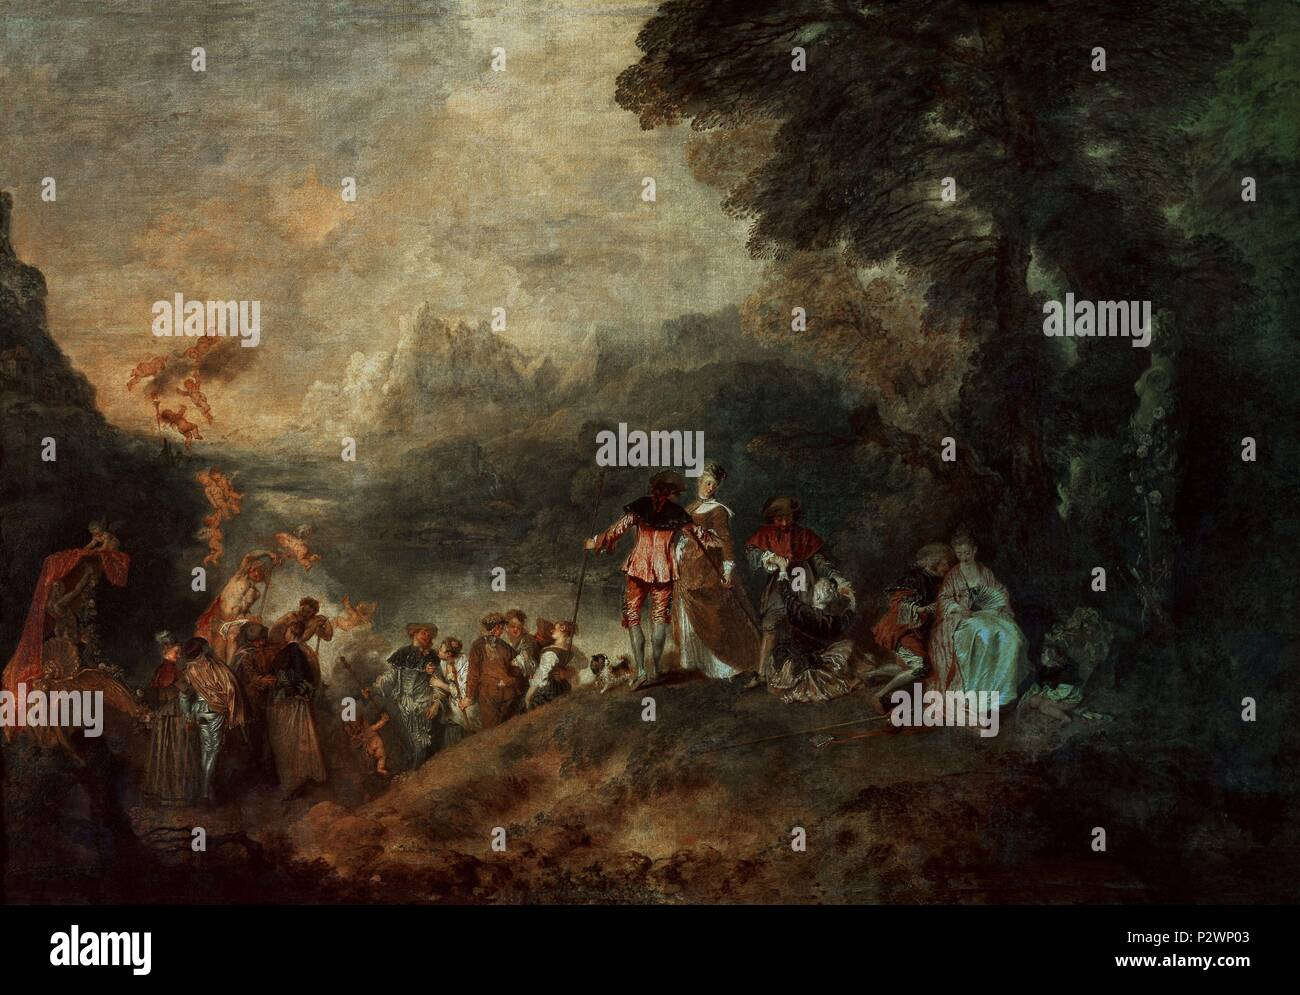 Embarkation for Cythera - 1717 - 129x194 cm - oil on canvas. Author: Jean Antoine Watteau (1684-1721). Location: LOUVRE MUSEUM-PAINTINGS, FRANCE. Also known as: PEREGRINAJE A LA ISLA DE CITEREA; LE PELERINAGE A L'ILE DE CYTHERE OU L'EMBARQUEMENT POUR CYTHERE. - Stock Image